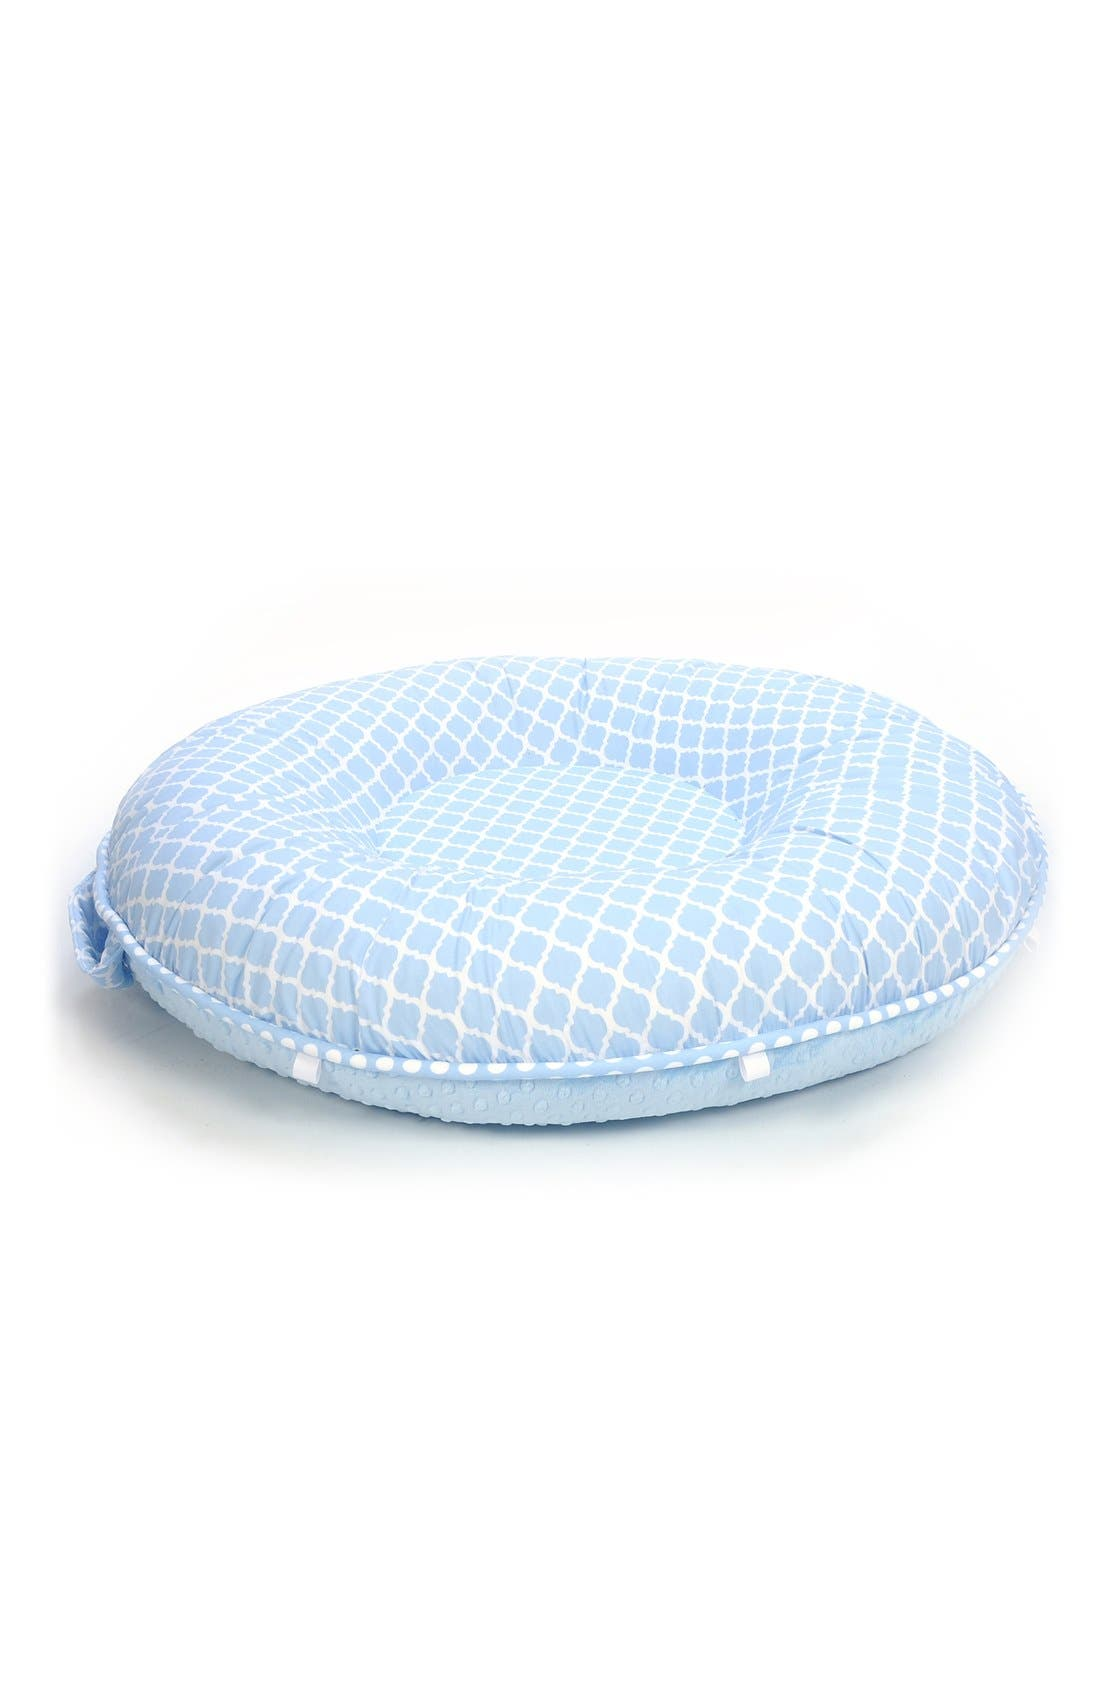 Pello 'Jack' Portable Floor Pillow